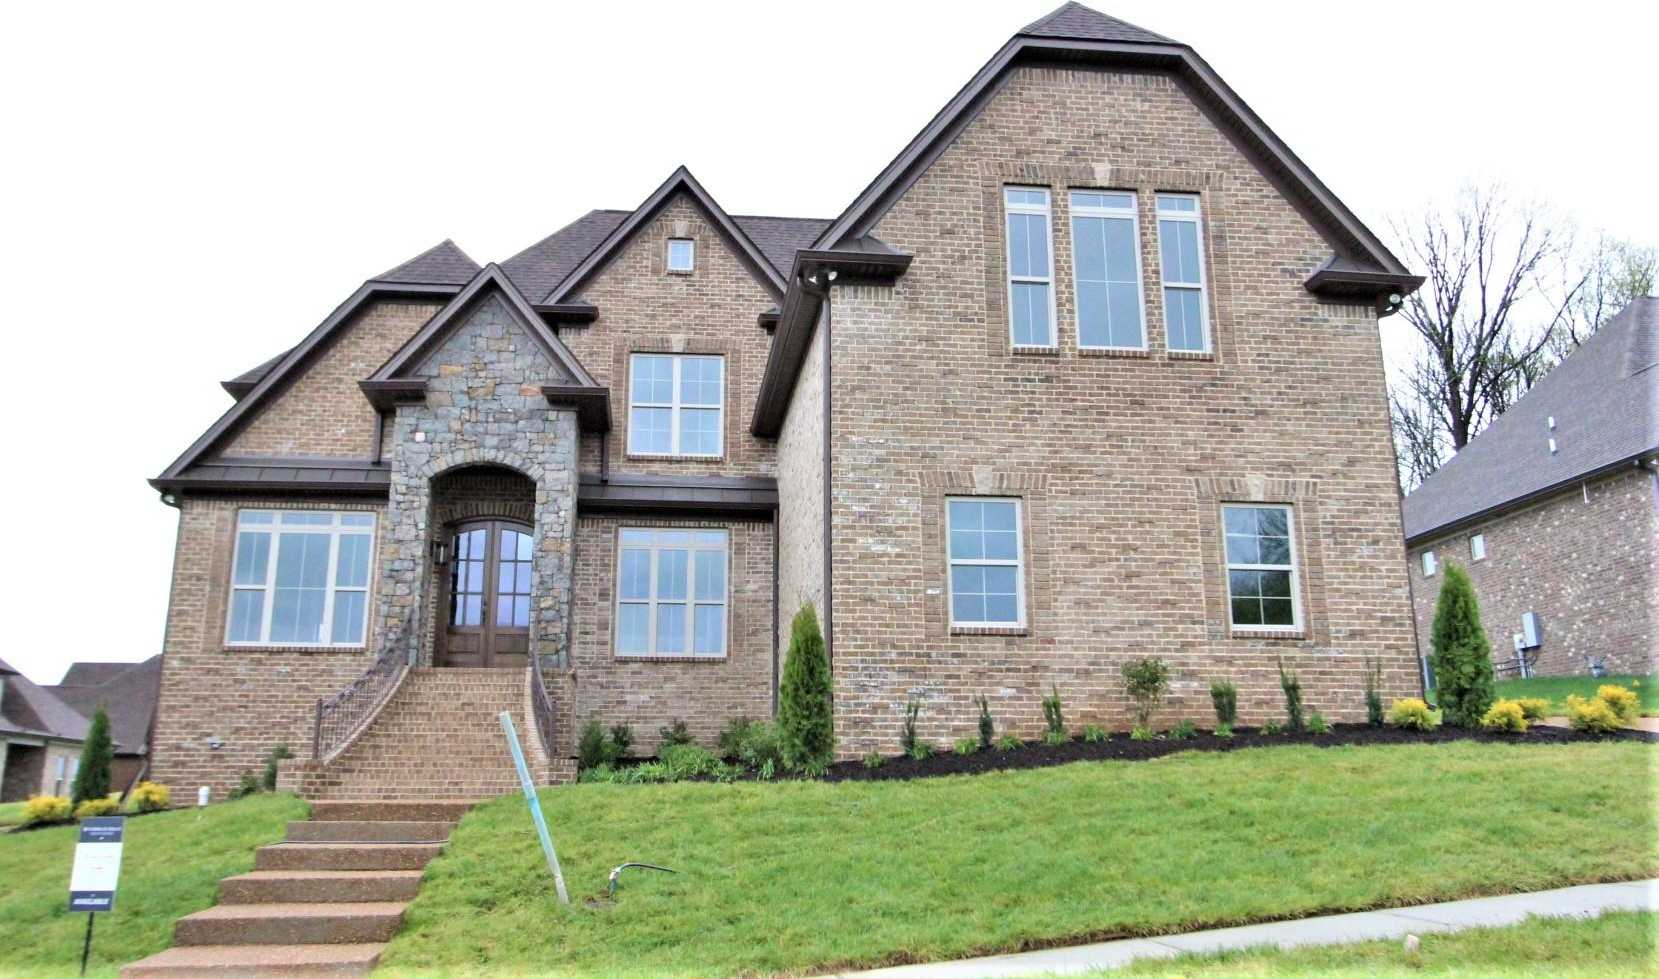 $544,900 - 4Br/4Ba -  for Sale in Nichols Vale, Mount Juliet